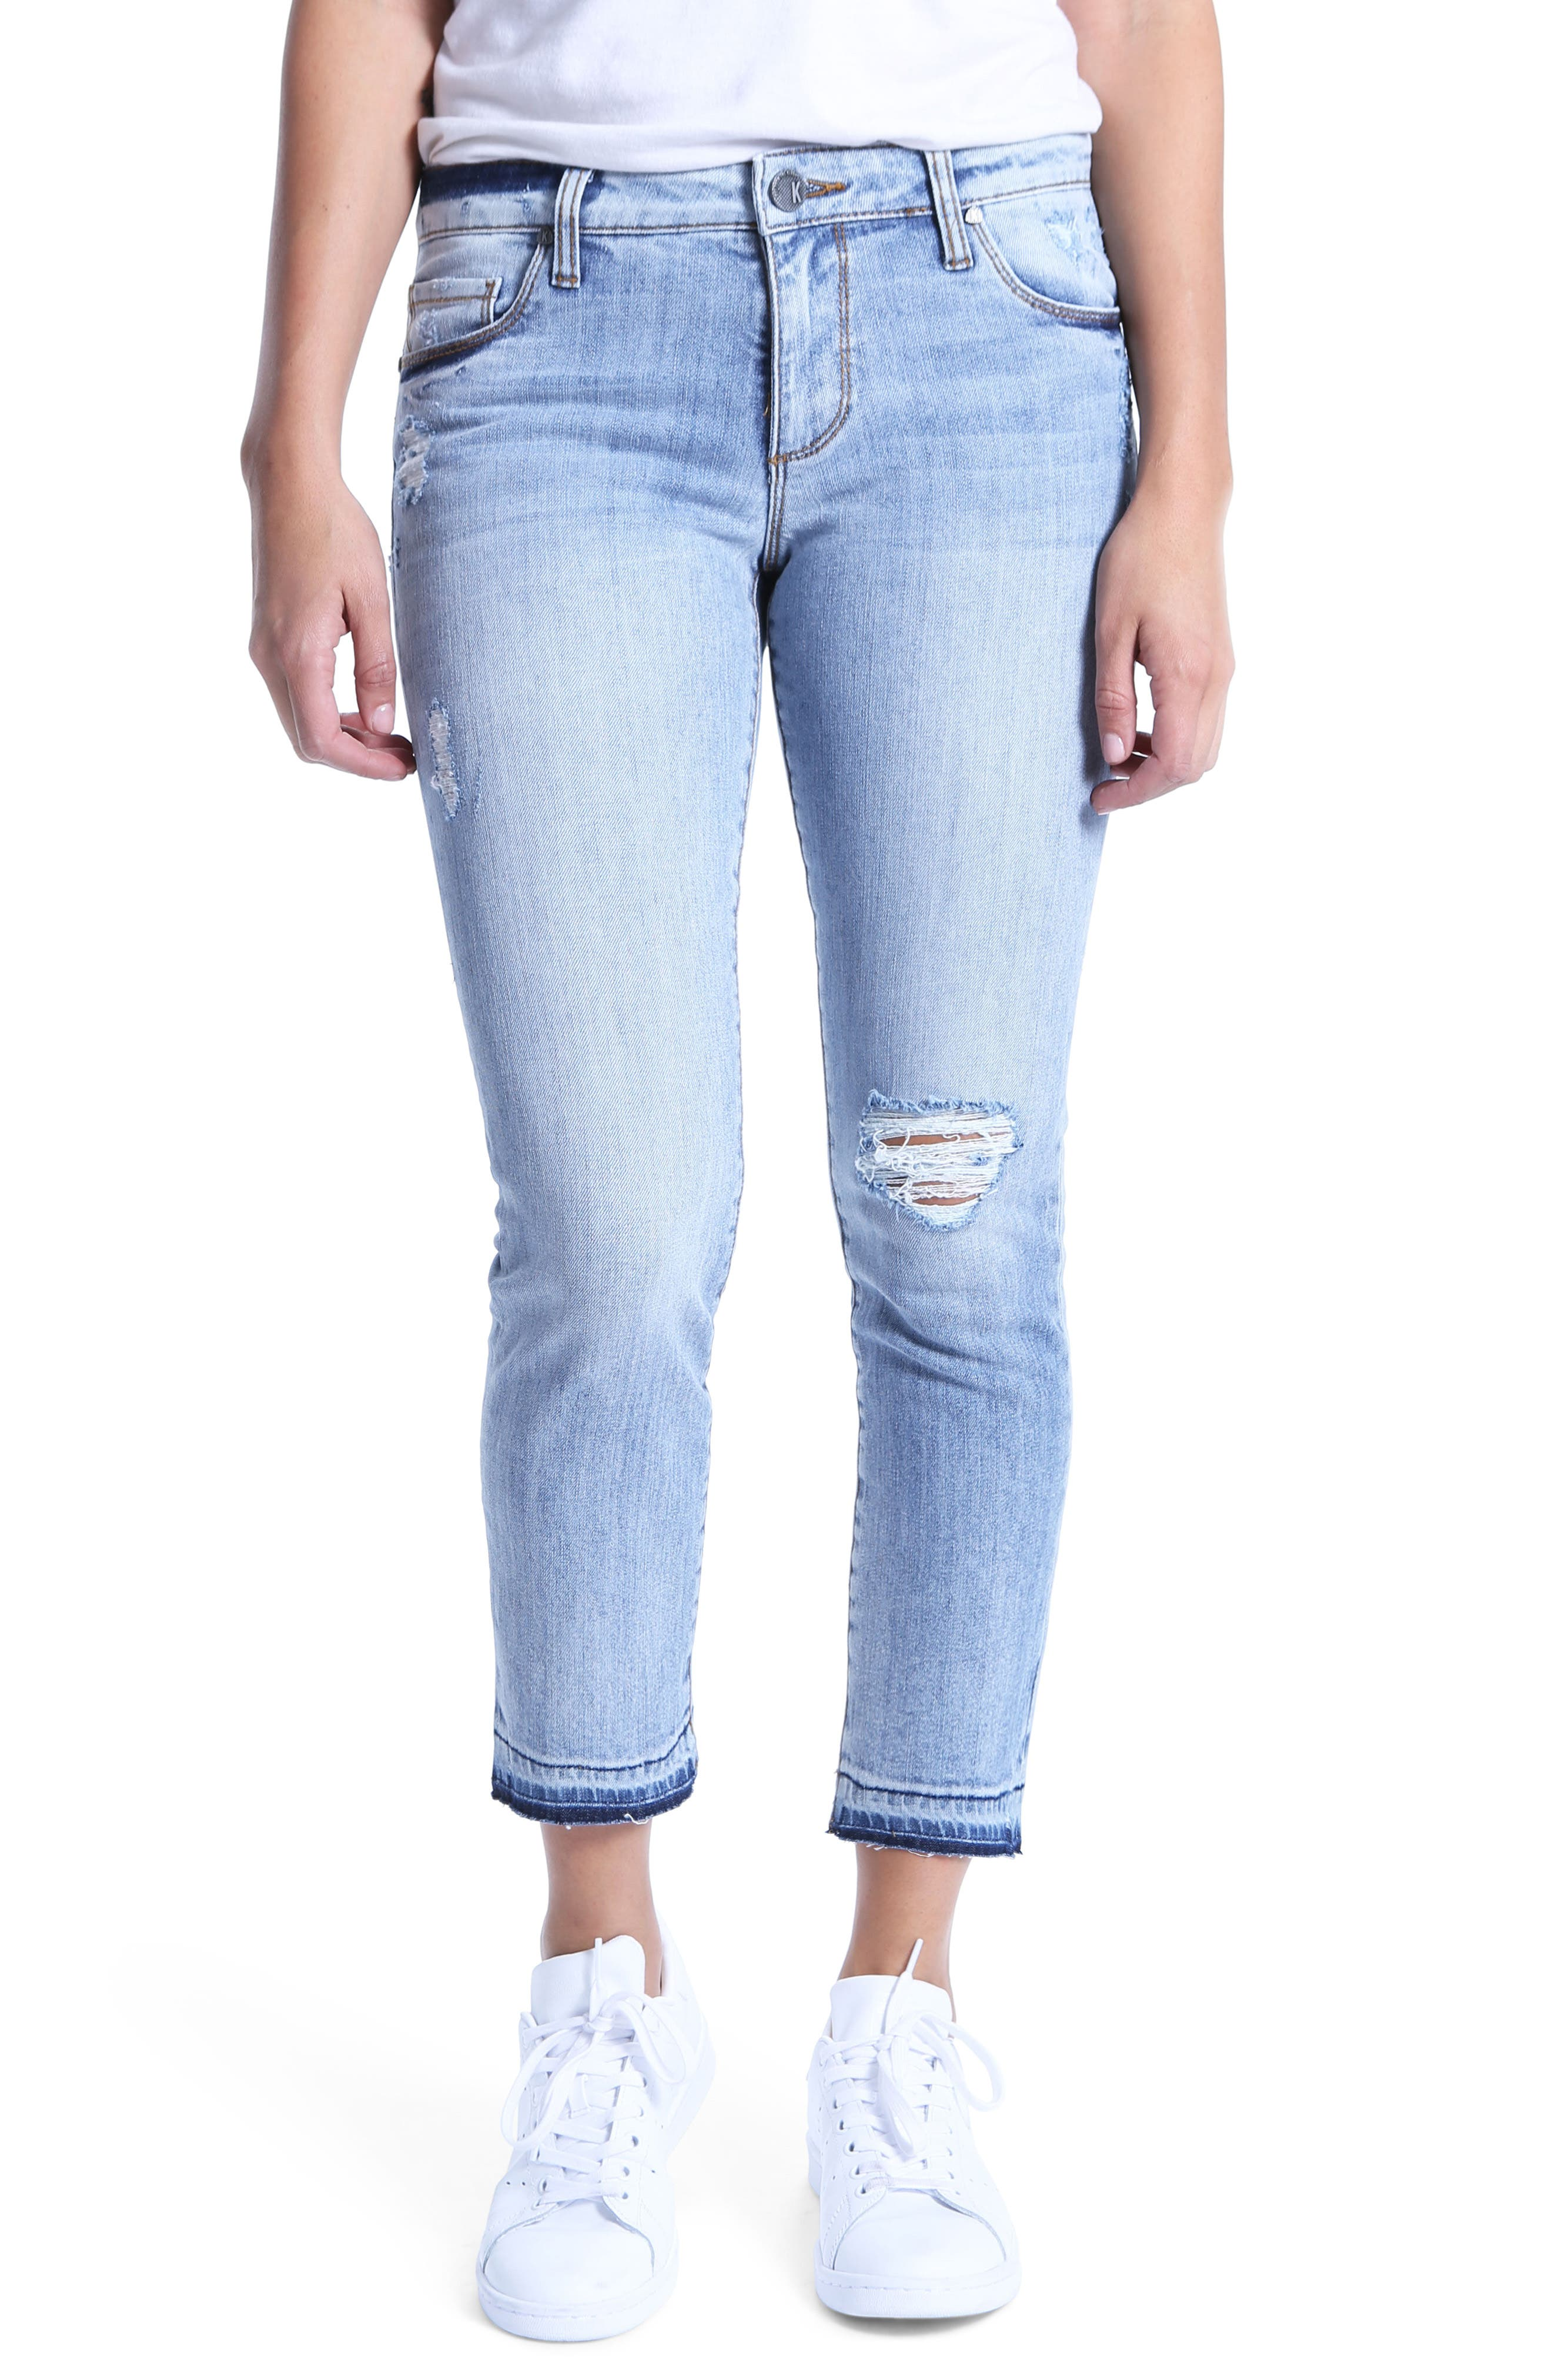 Reese Ripped Ankle Jeans,                             Main thumbnail 1, color,                             Announce